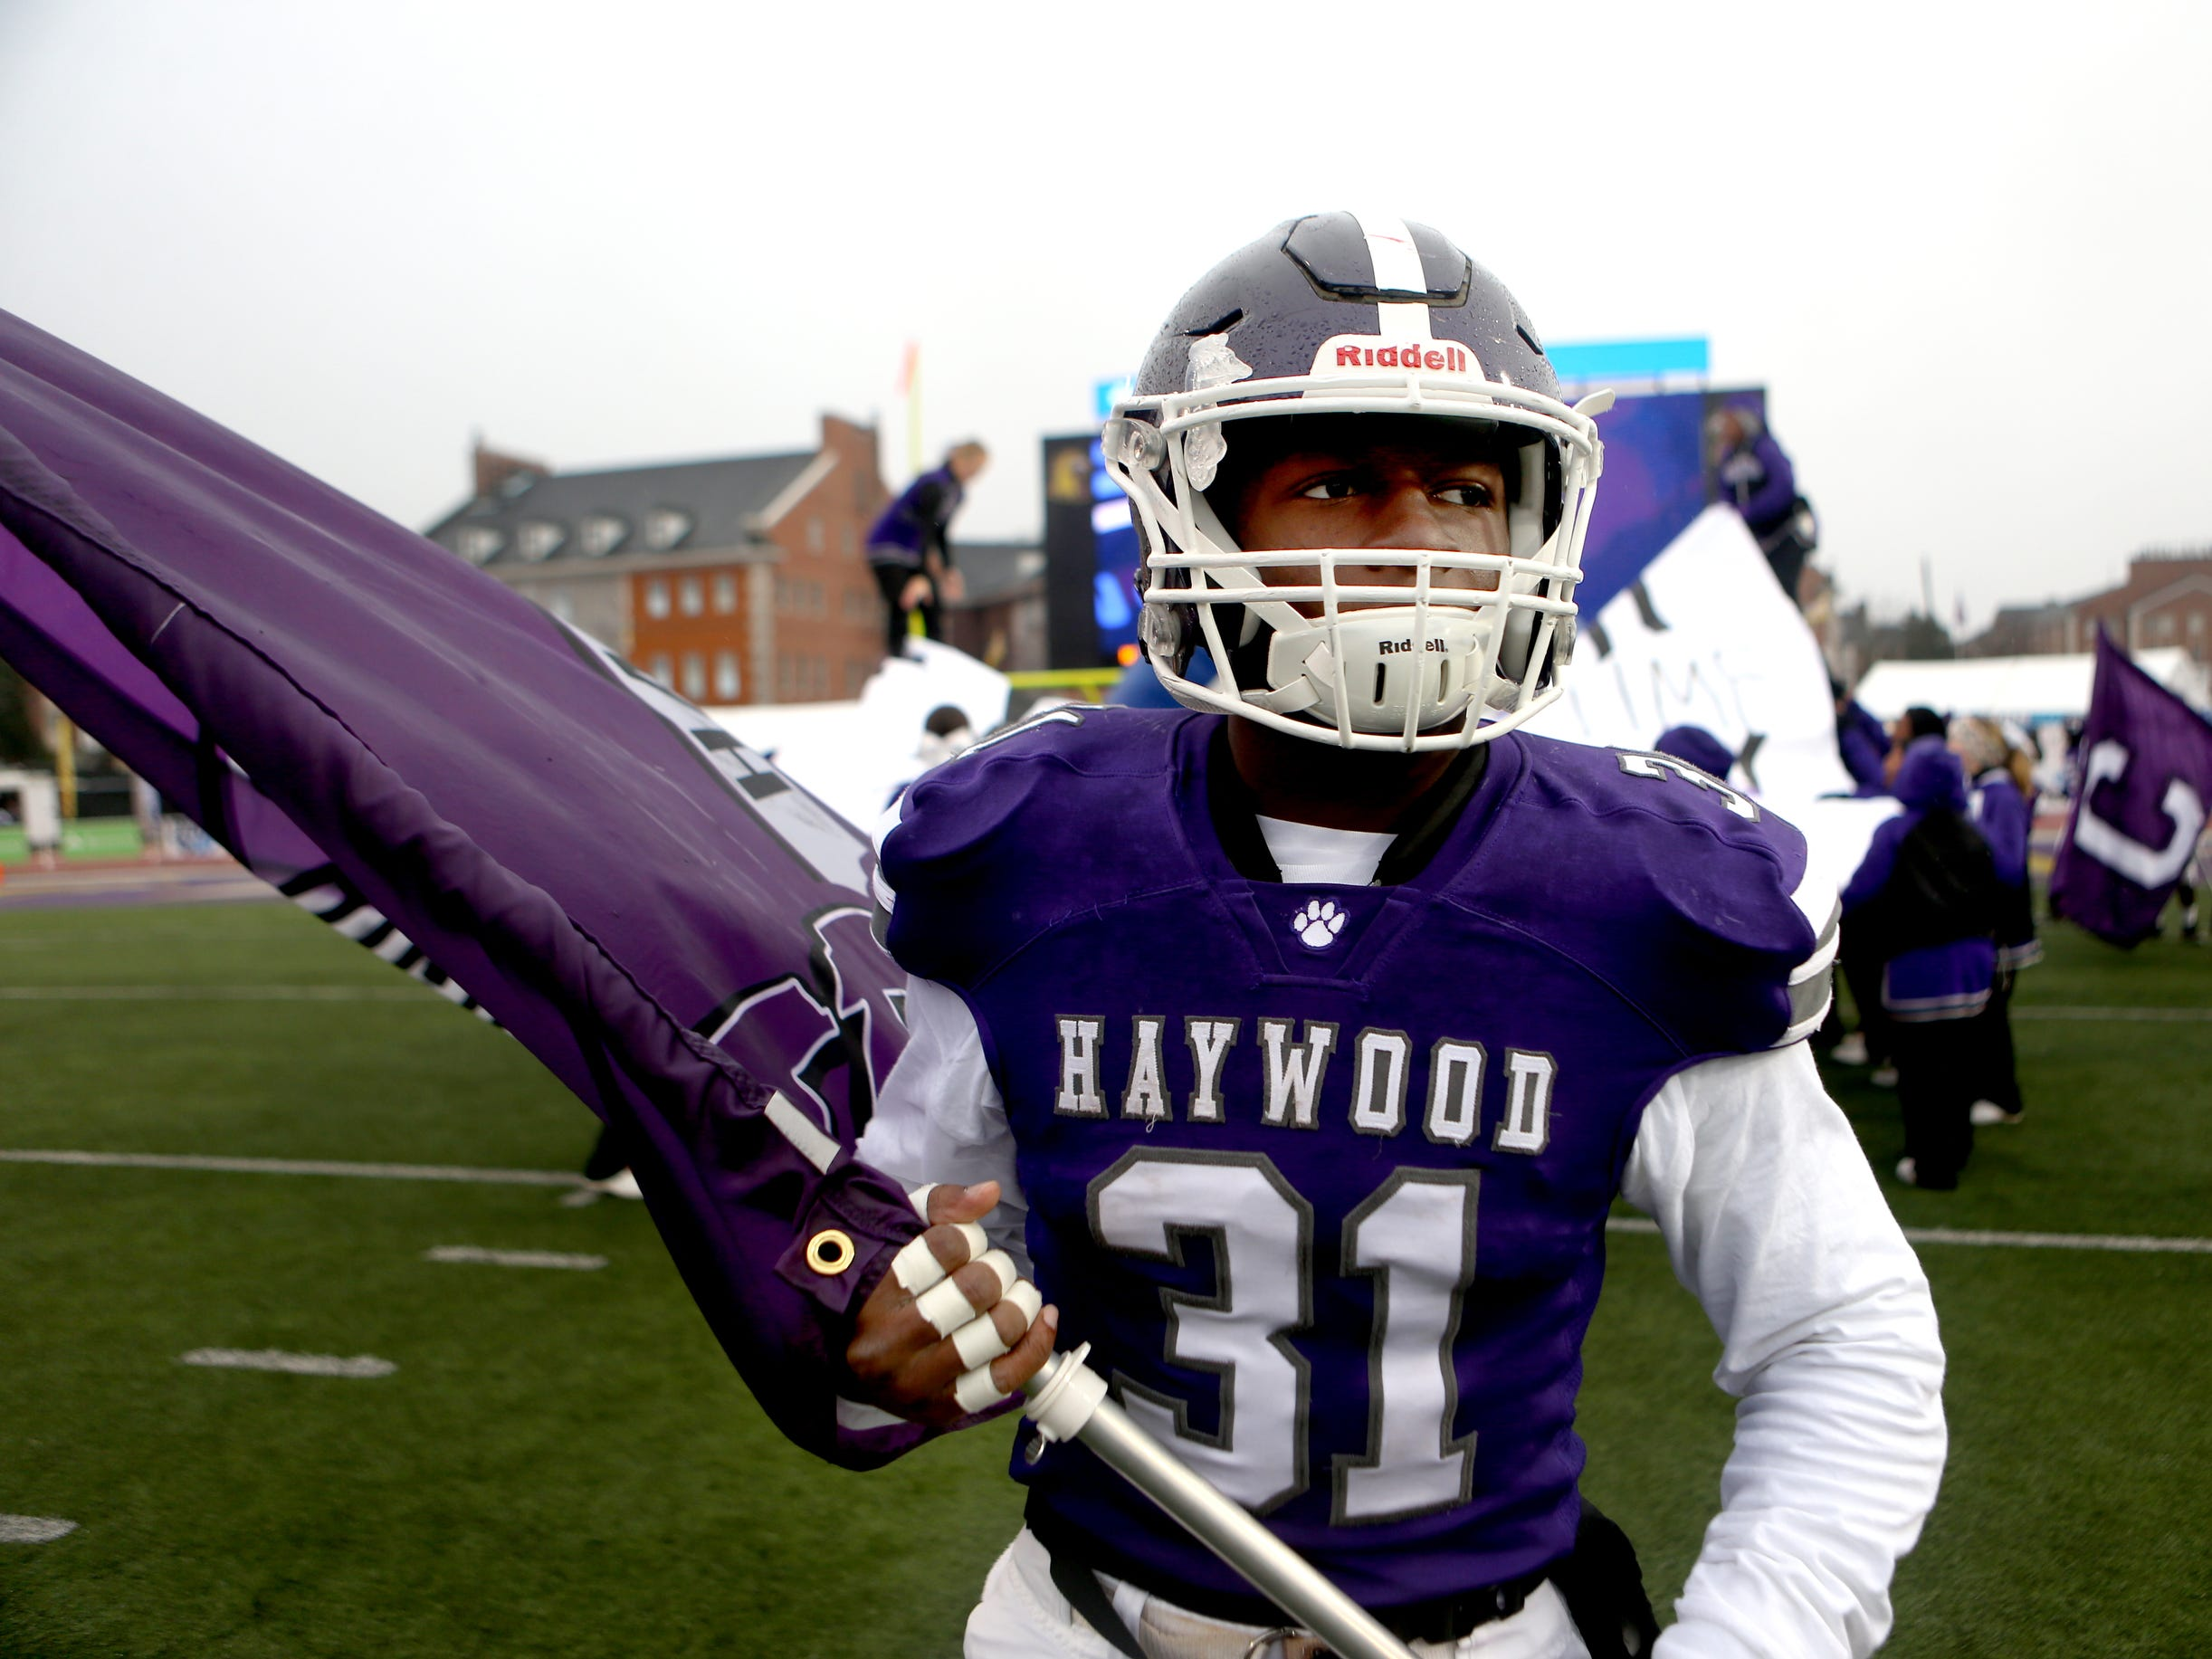 Haywood's  Decourtney Reed (31) holds a Haywood flag as the team runs onto the field during the Class 4A BlueCross Bowl state championship Thursday, Nov. 29, 2018, at Tennessee Tech's Tucker Stadium in Cookeville, Tenn.